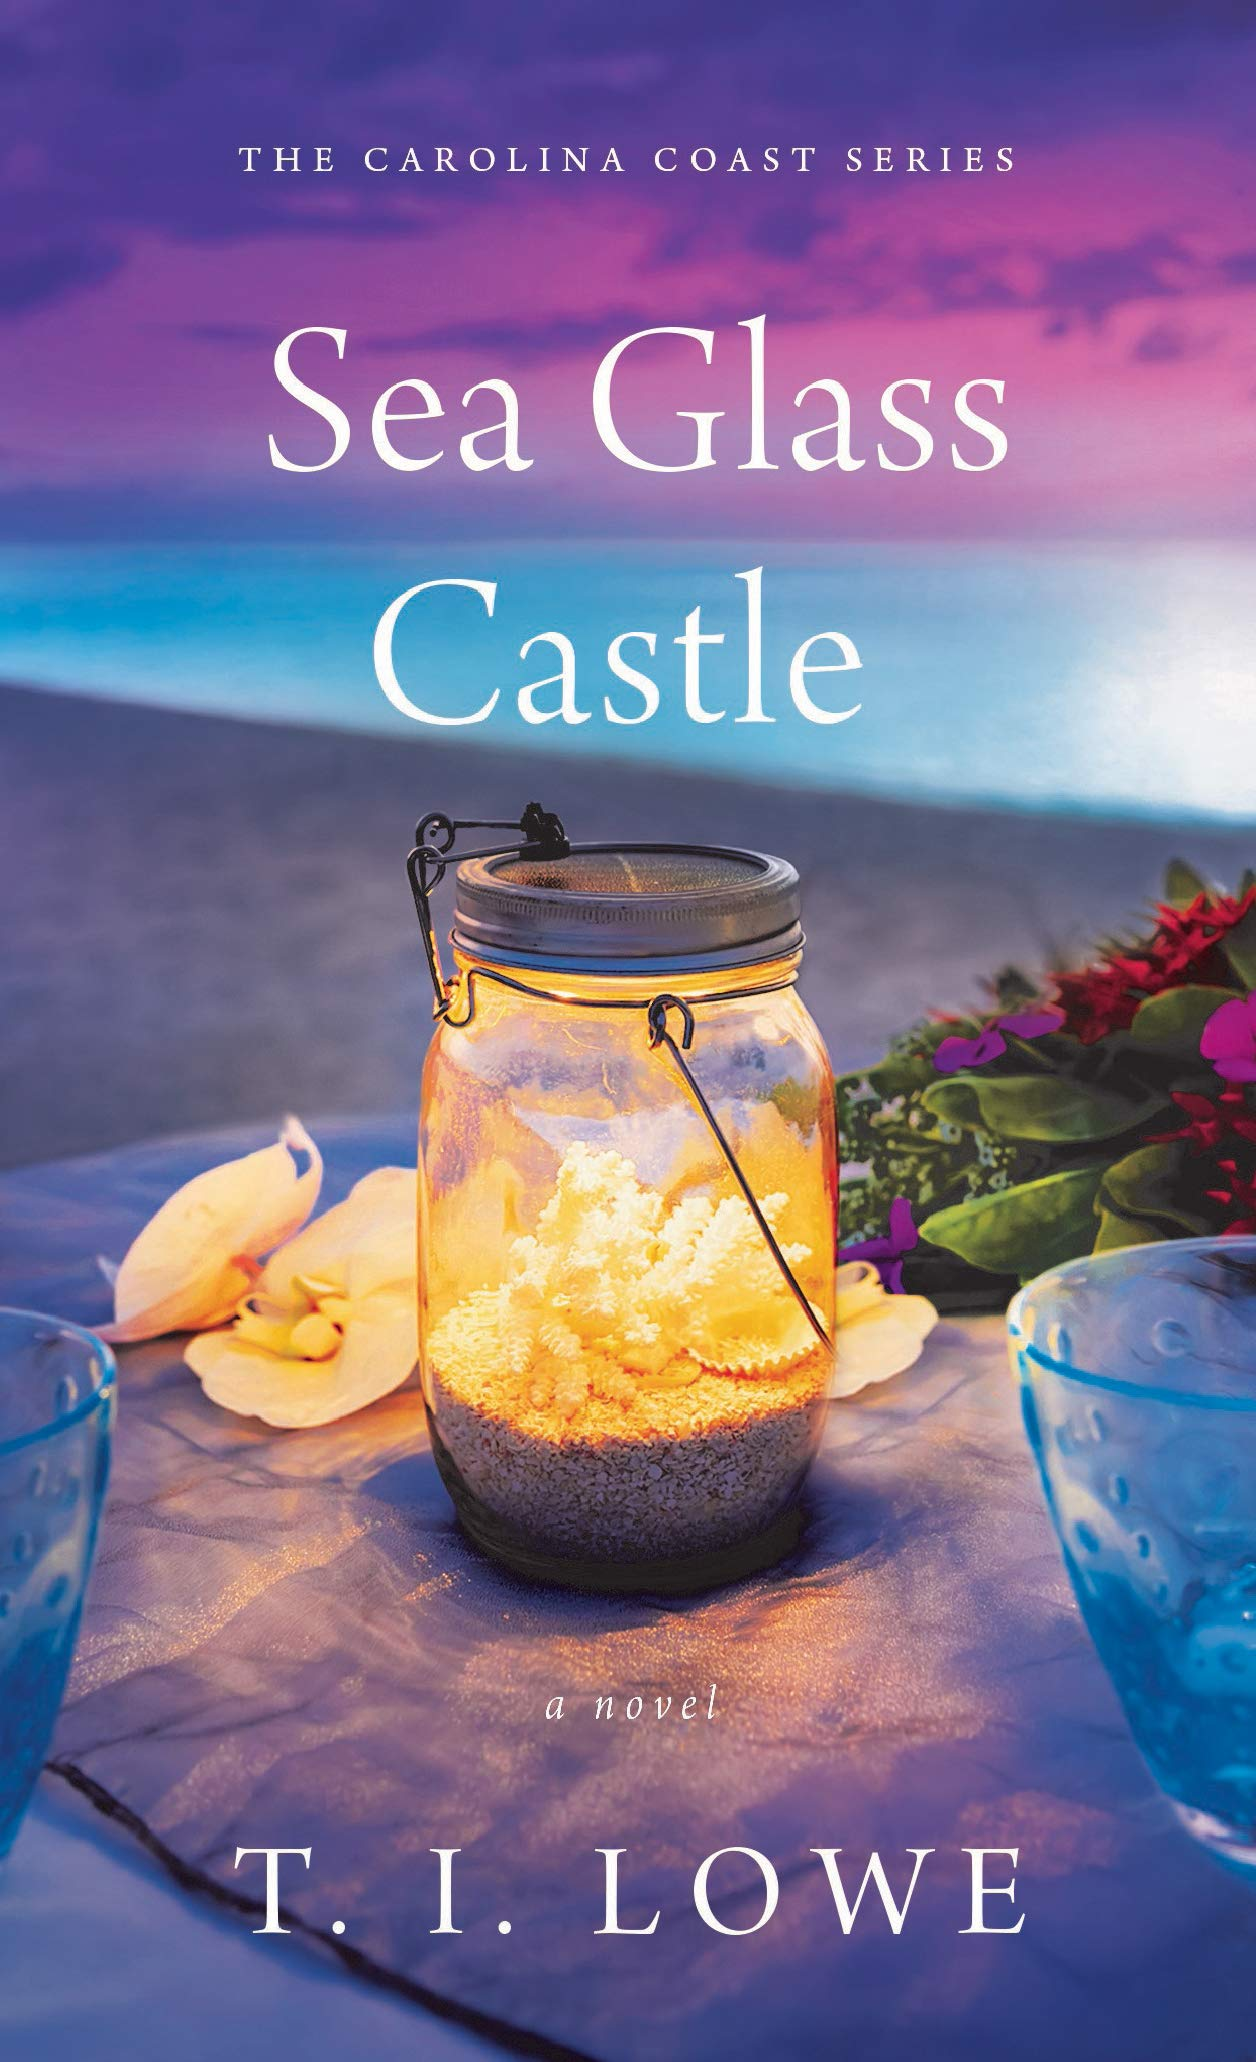 Sea Glass Castle by T.I. Lowe {Book Review}